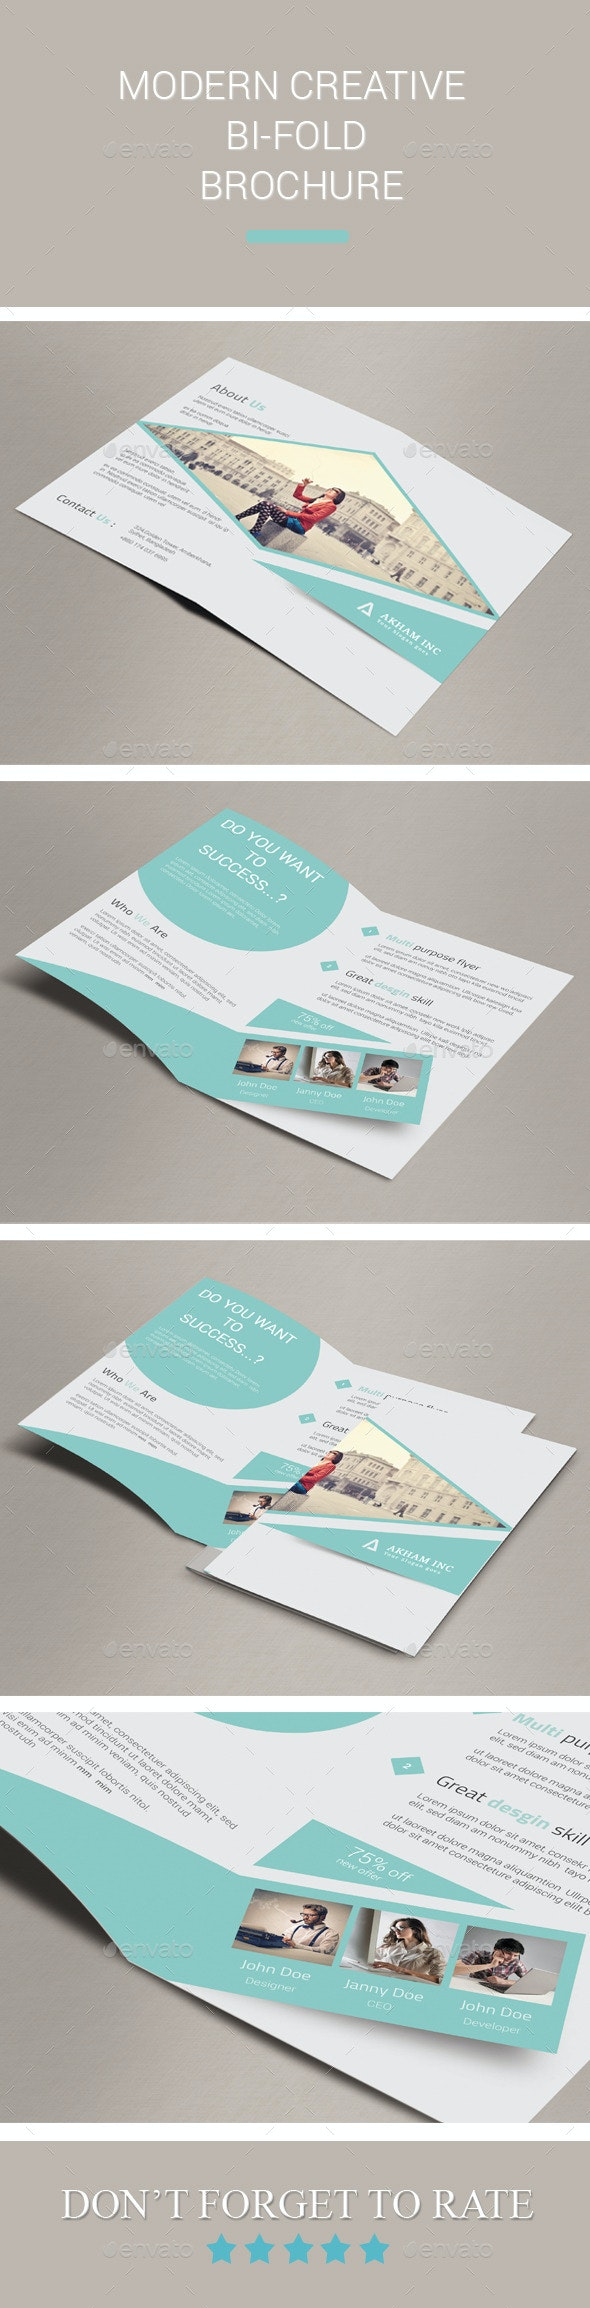 Modern Creative Bi-fold Brochure - Corporate Brochures